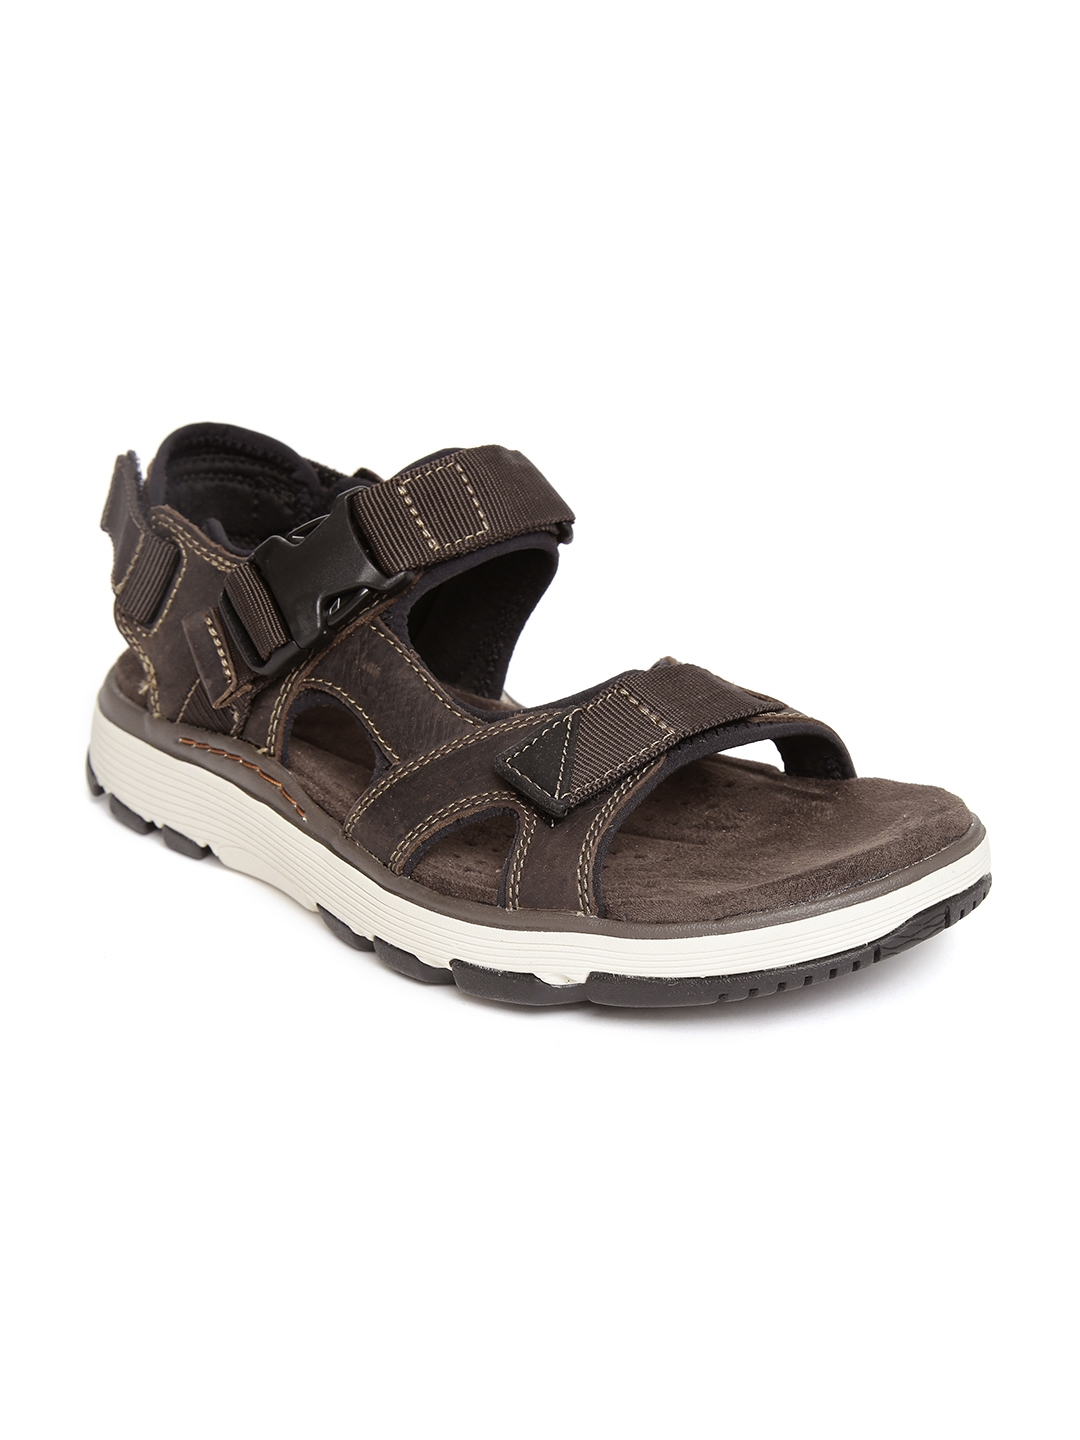 9a7ae71c5985 Buy Clarks Men Coffee Brown Leather Comfort Sandals - Sandals for ...